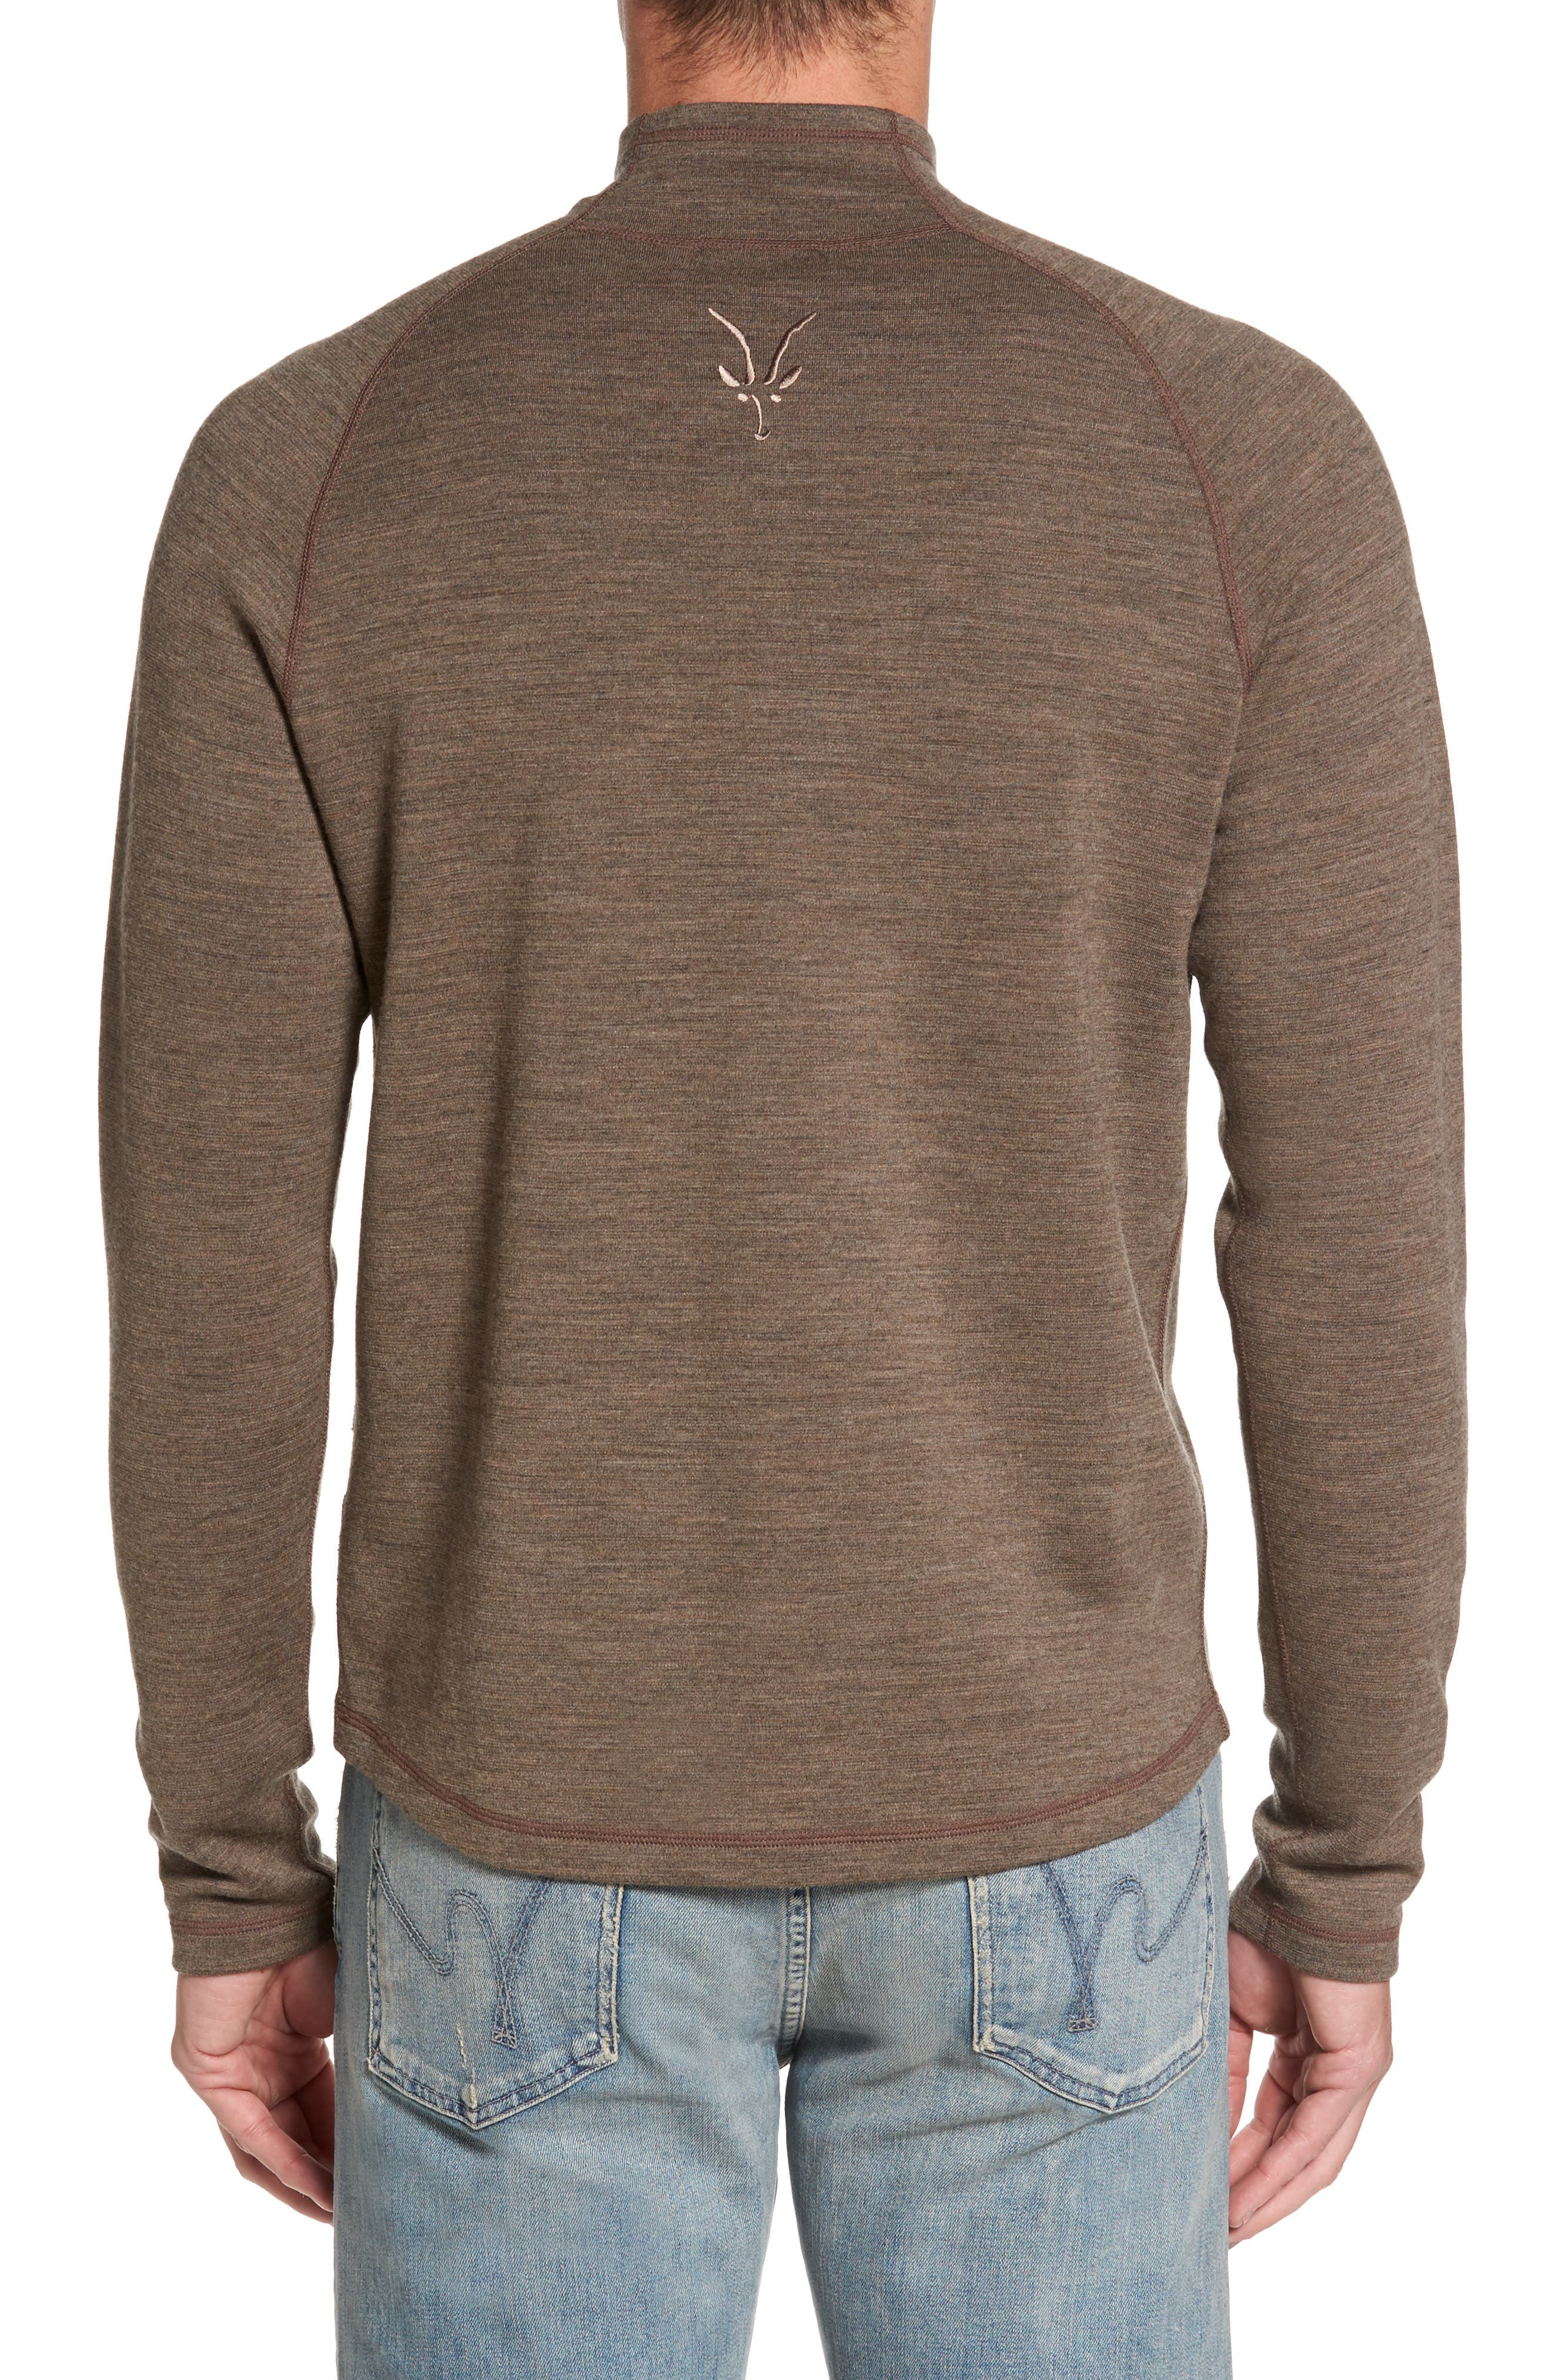 'Shak' Merino Wool Quarter Zip Top,                             Alternate thumbnail 2, color,                             250